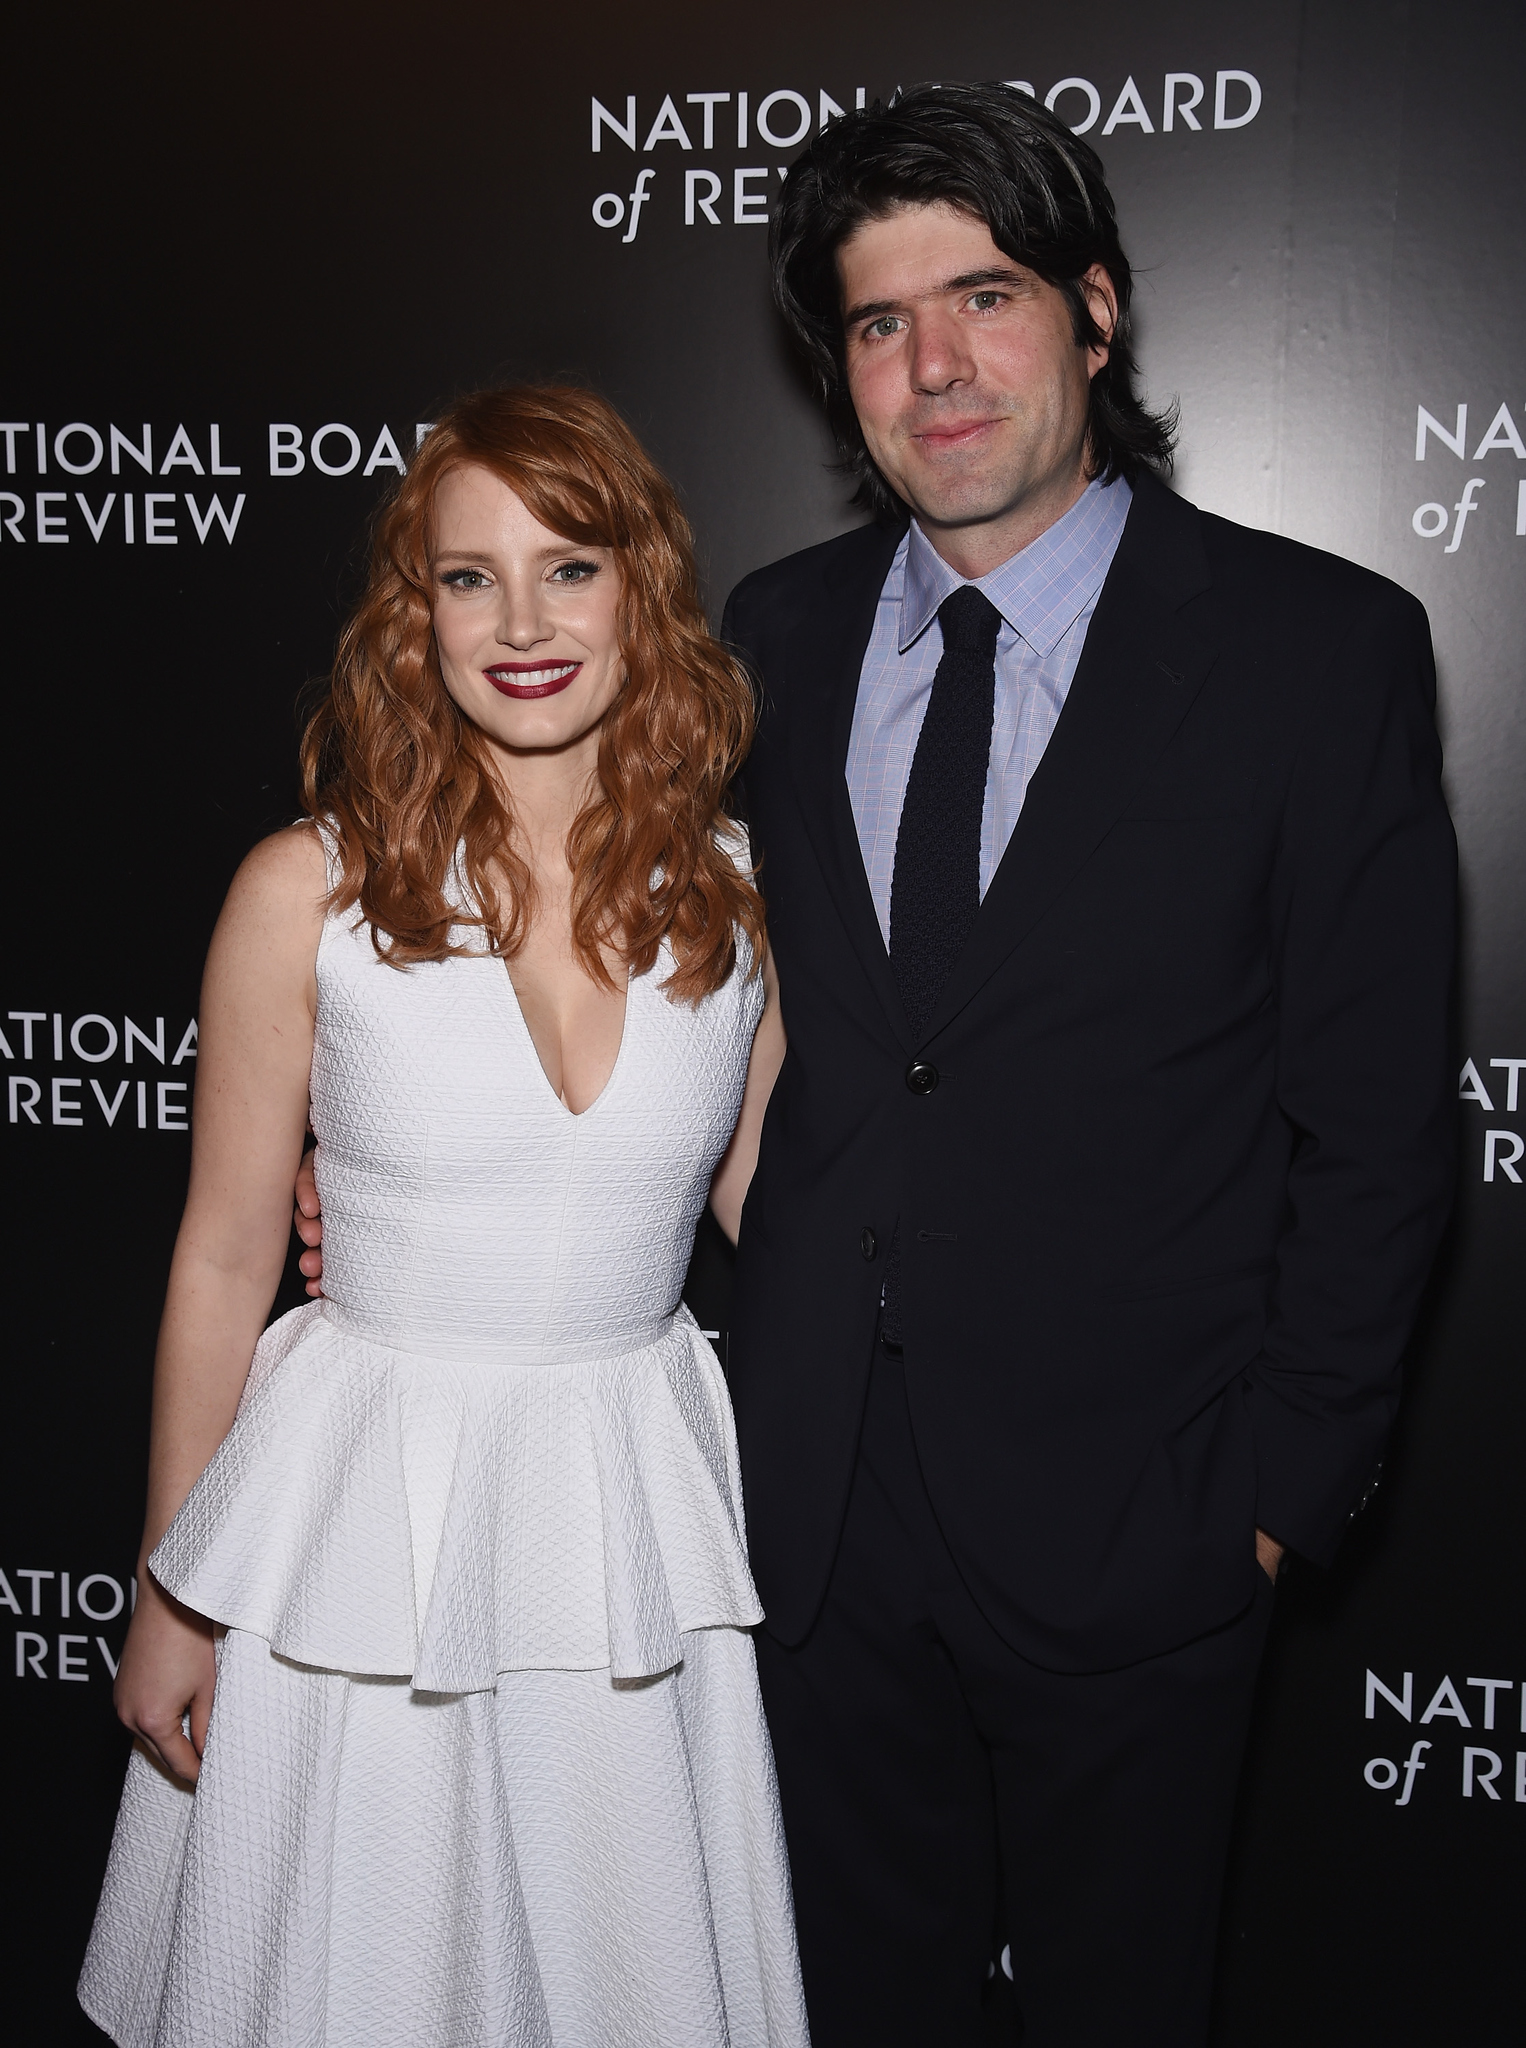 J.C. Chandor and Jessica Chastain